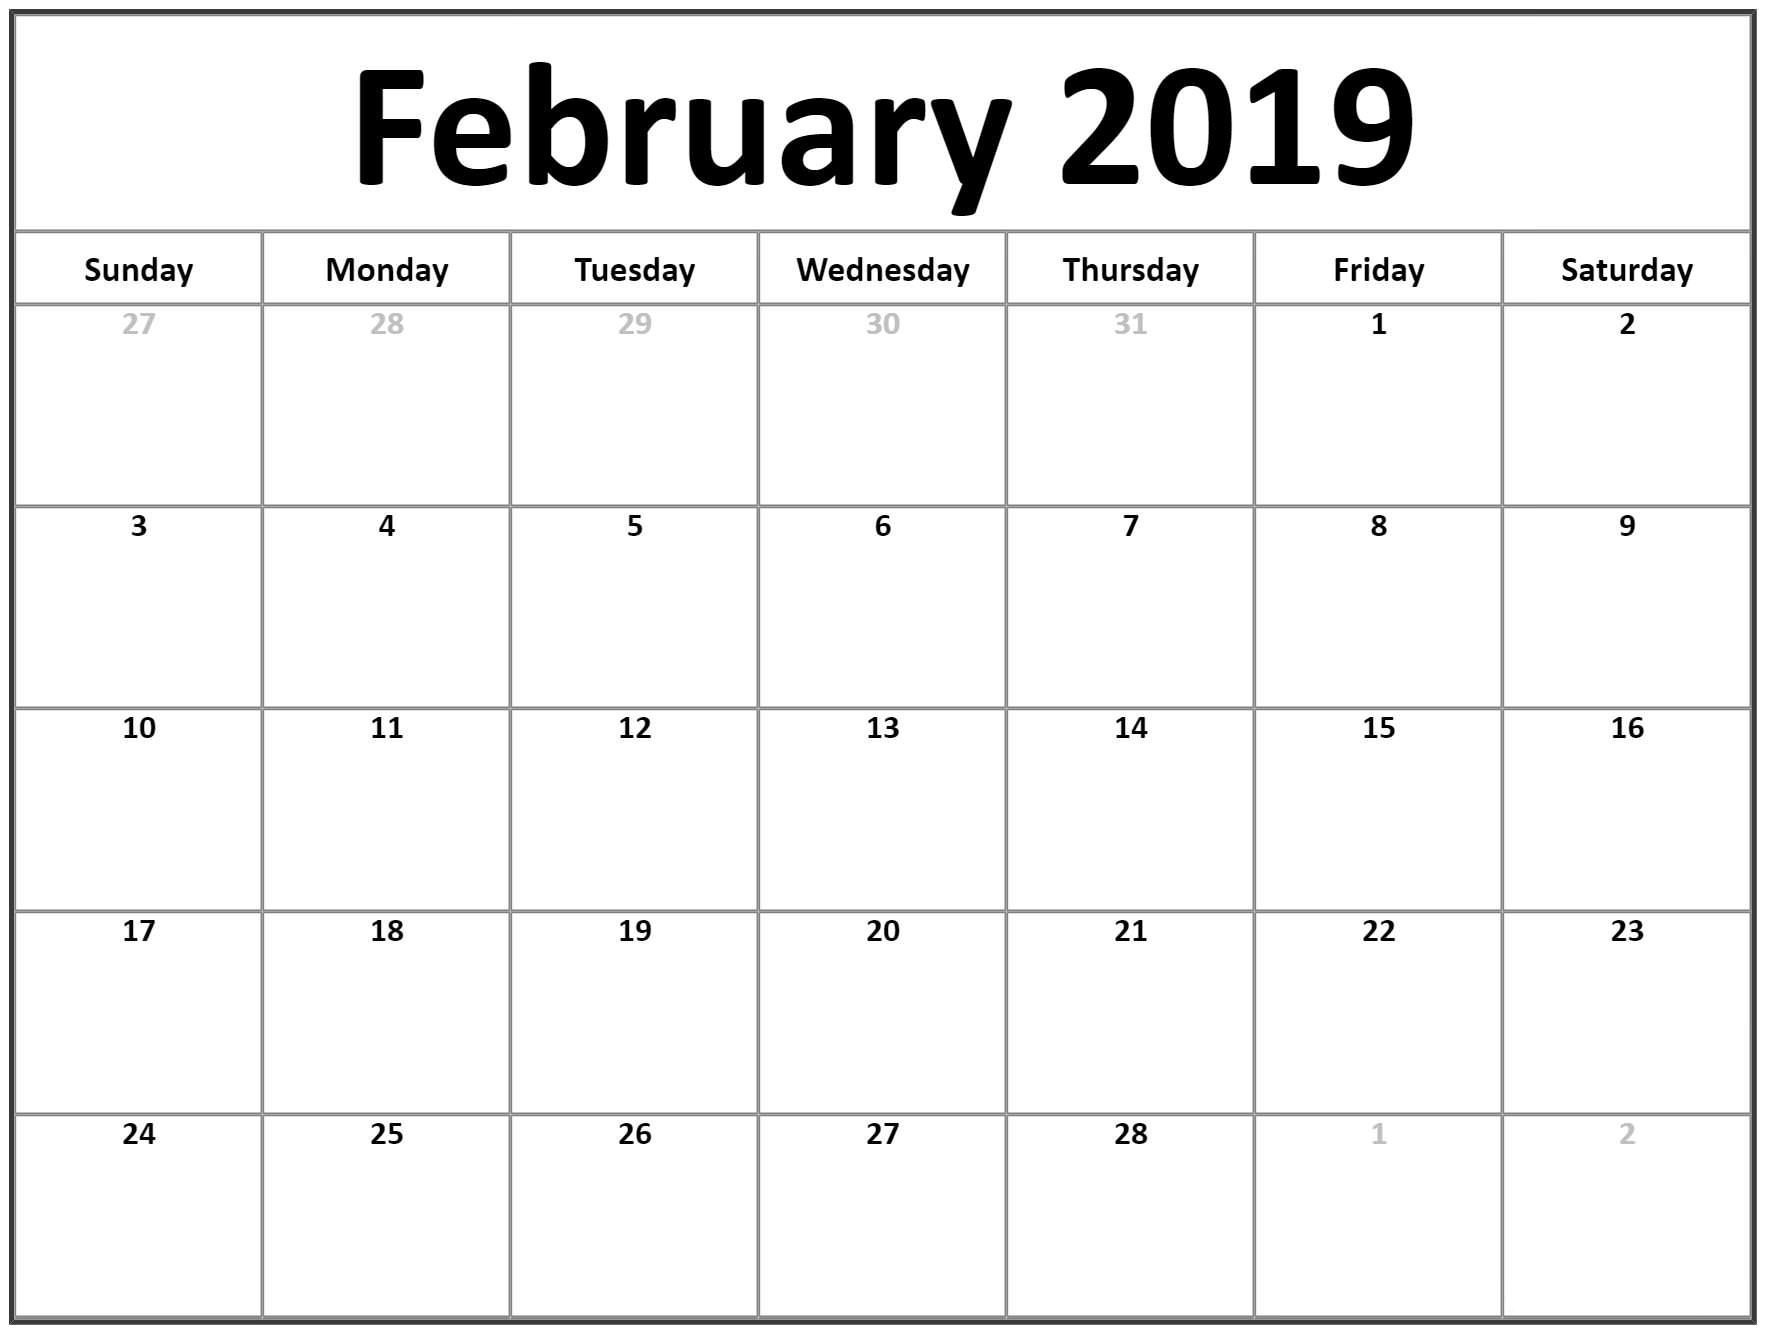 download february 2019 calendar with holidays blank calendar 2019::February 2019 Calendar